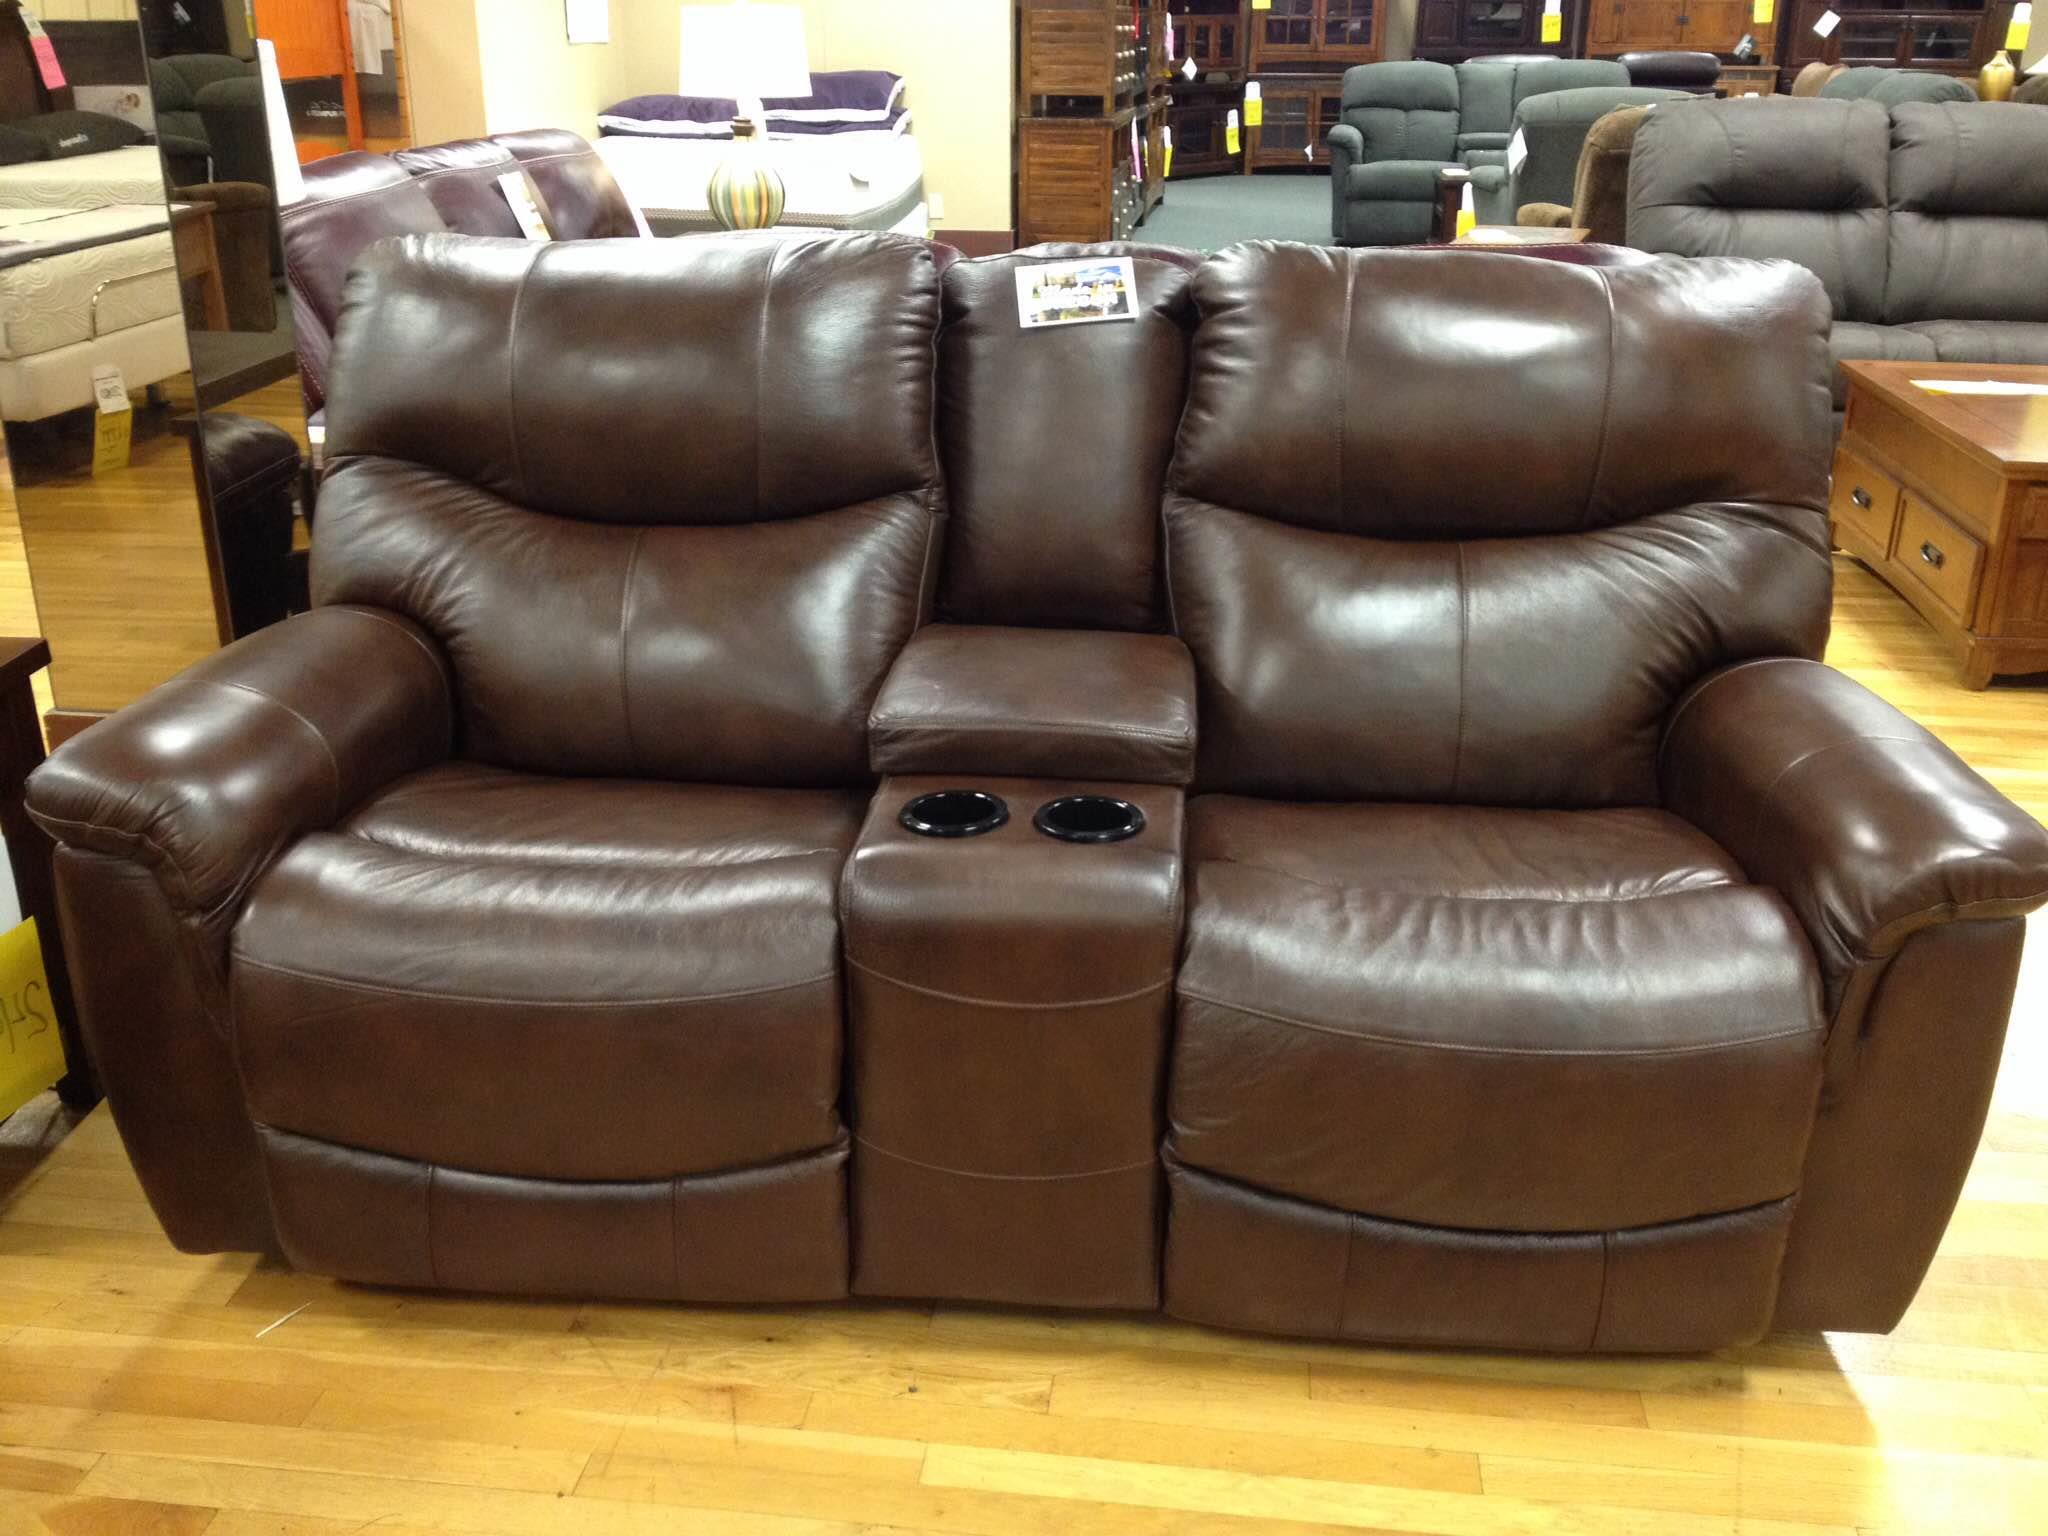 Stanton 836 Power Reclining Loveseat - Item Number 83685P & Stanton 836 Power Reclining Console Loveseat - Rifeu0027s Home ... islam-shia.org